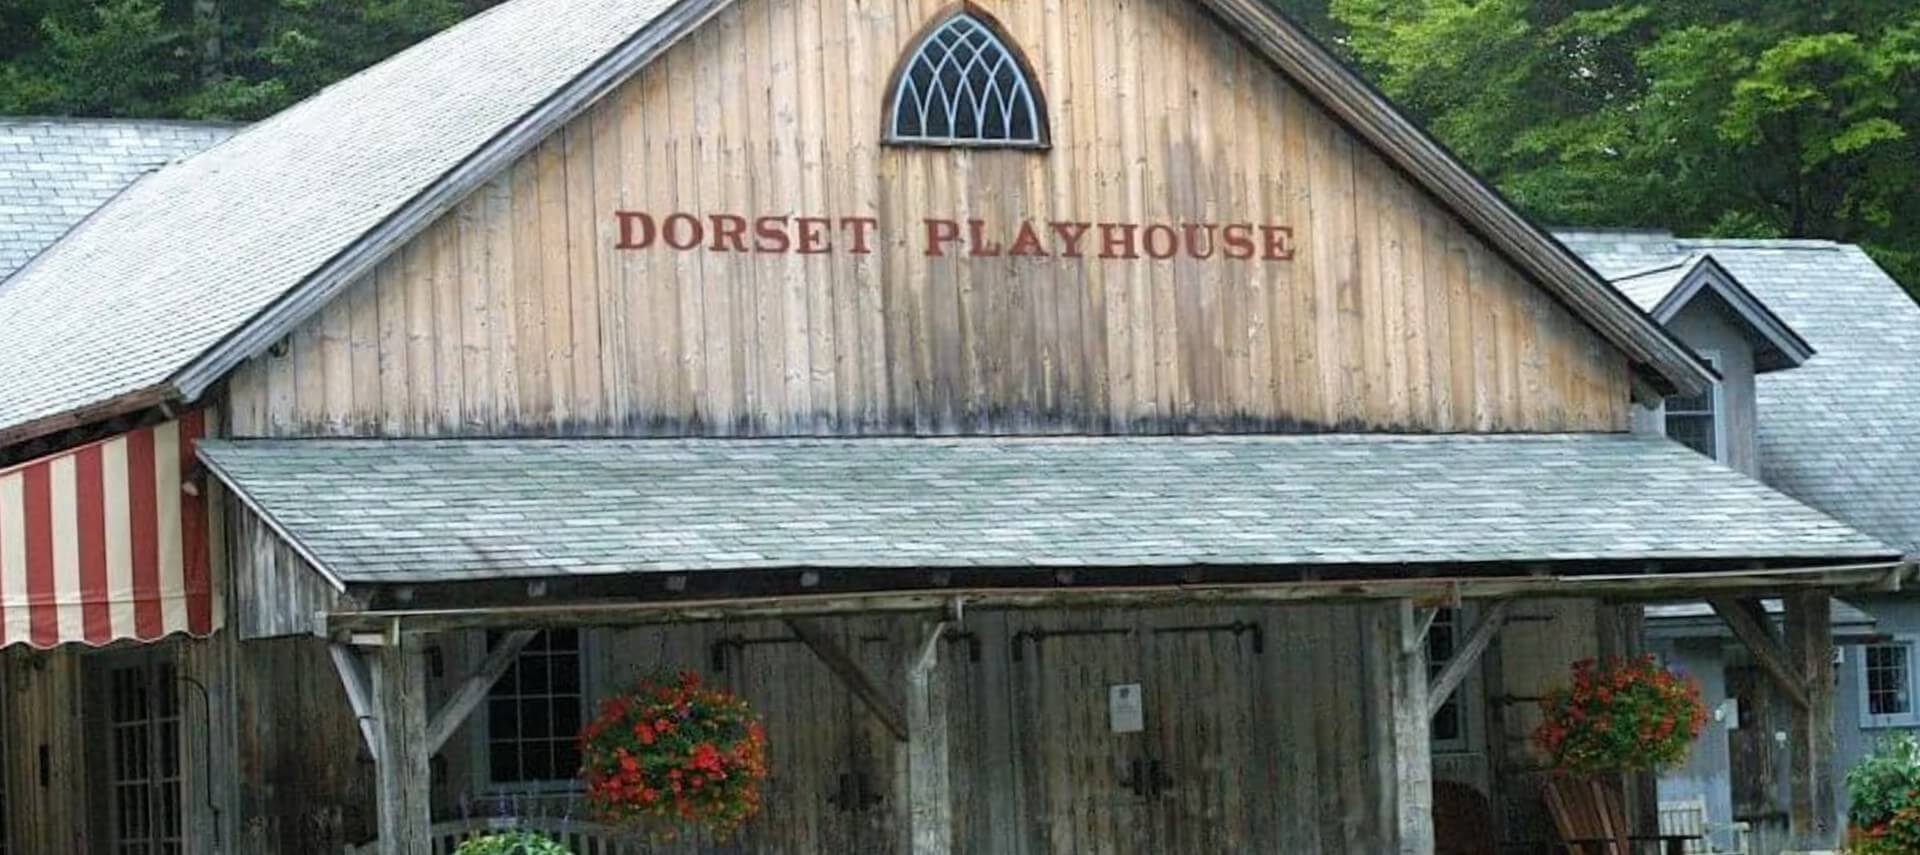 Large wooden building with red striped awnings and a sign that says Dorset Playhouse.